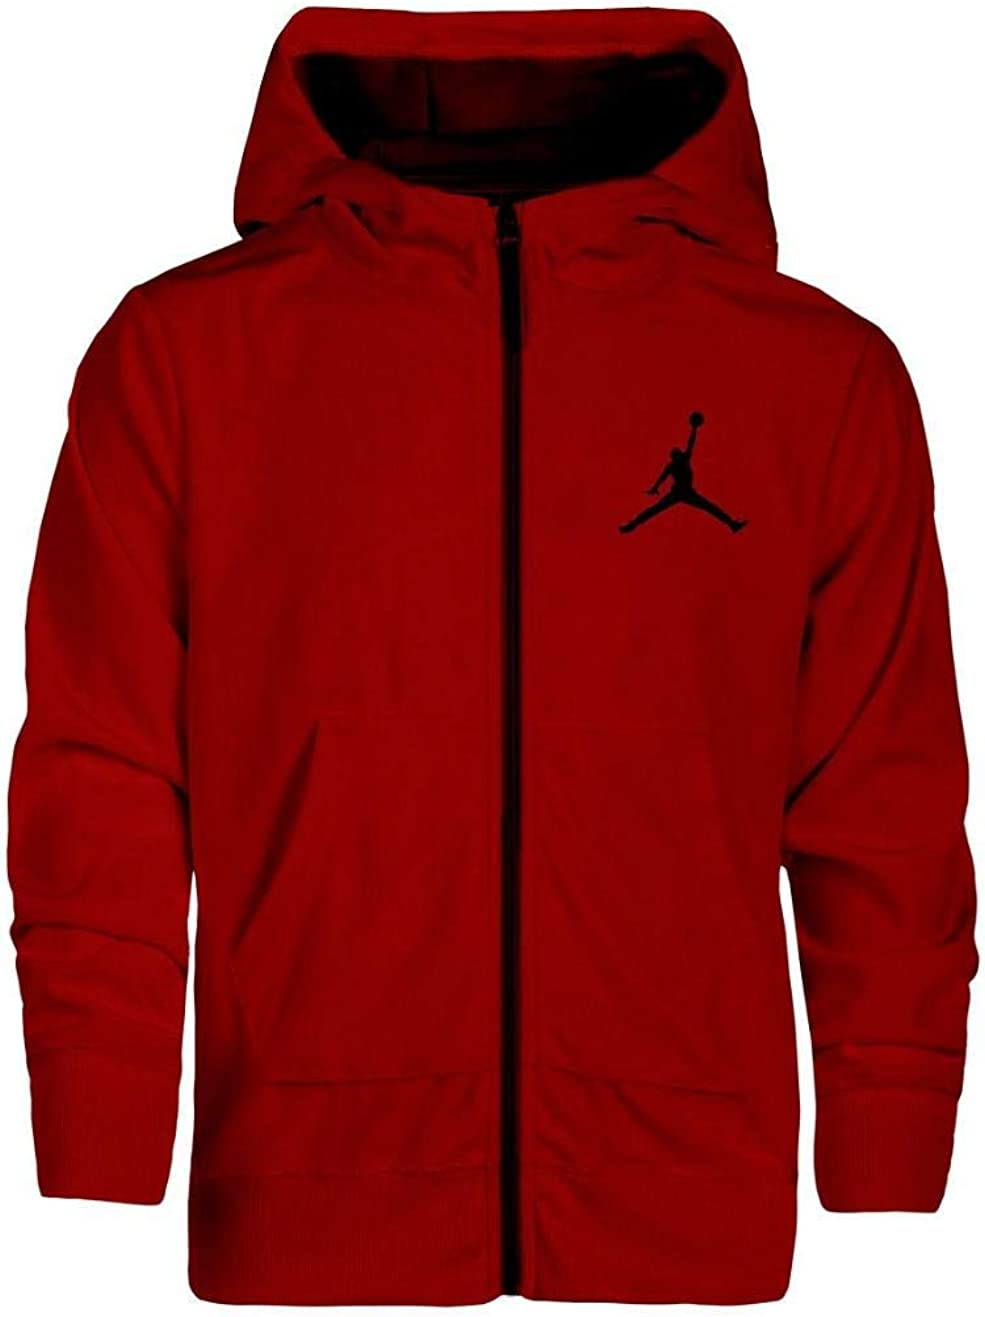 Nike Complete Free Free Shipping New Shipping Air Jordan Boys Velour Zipper X-Large Red Hoodie